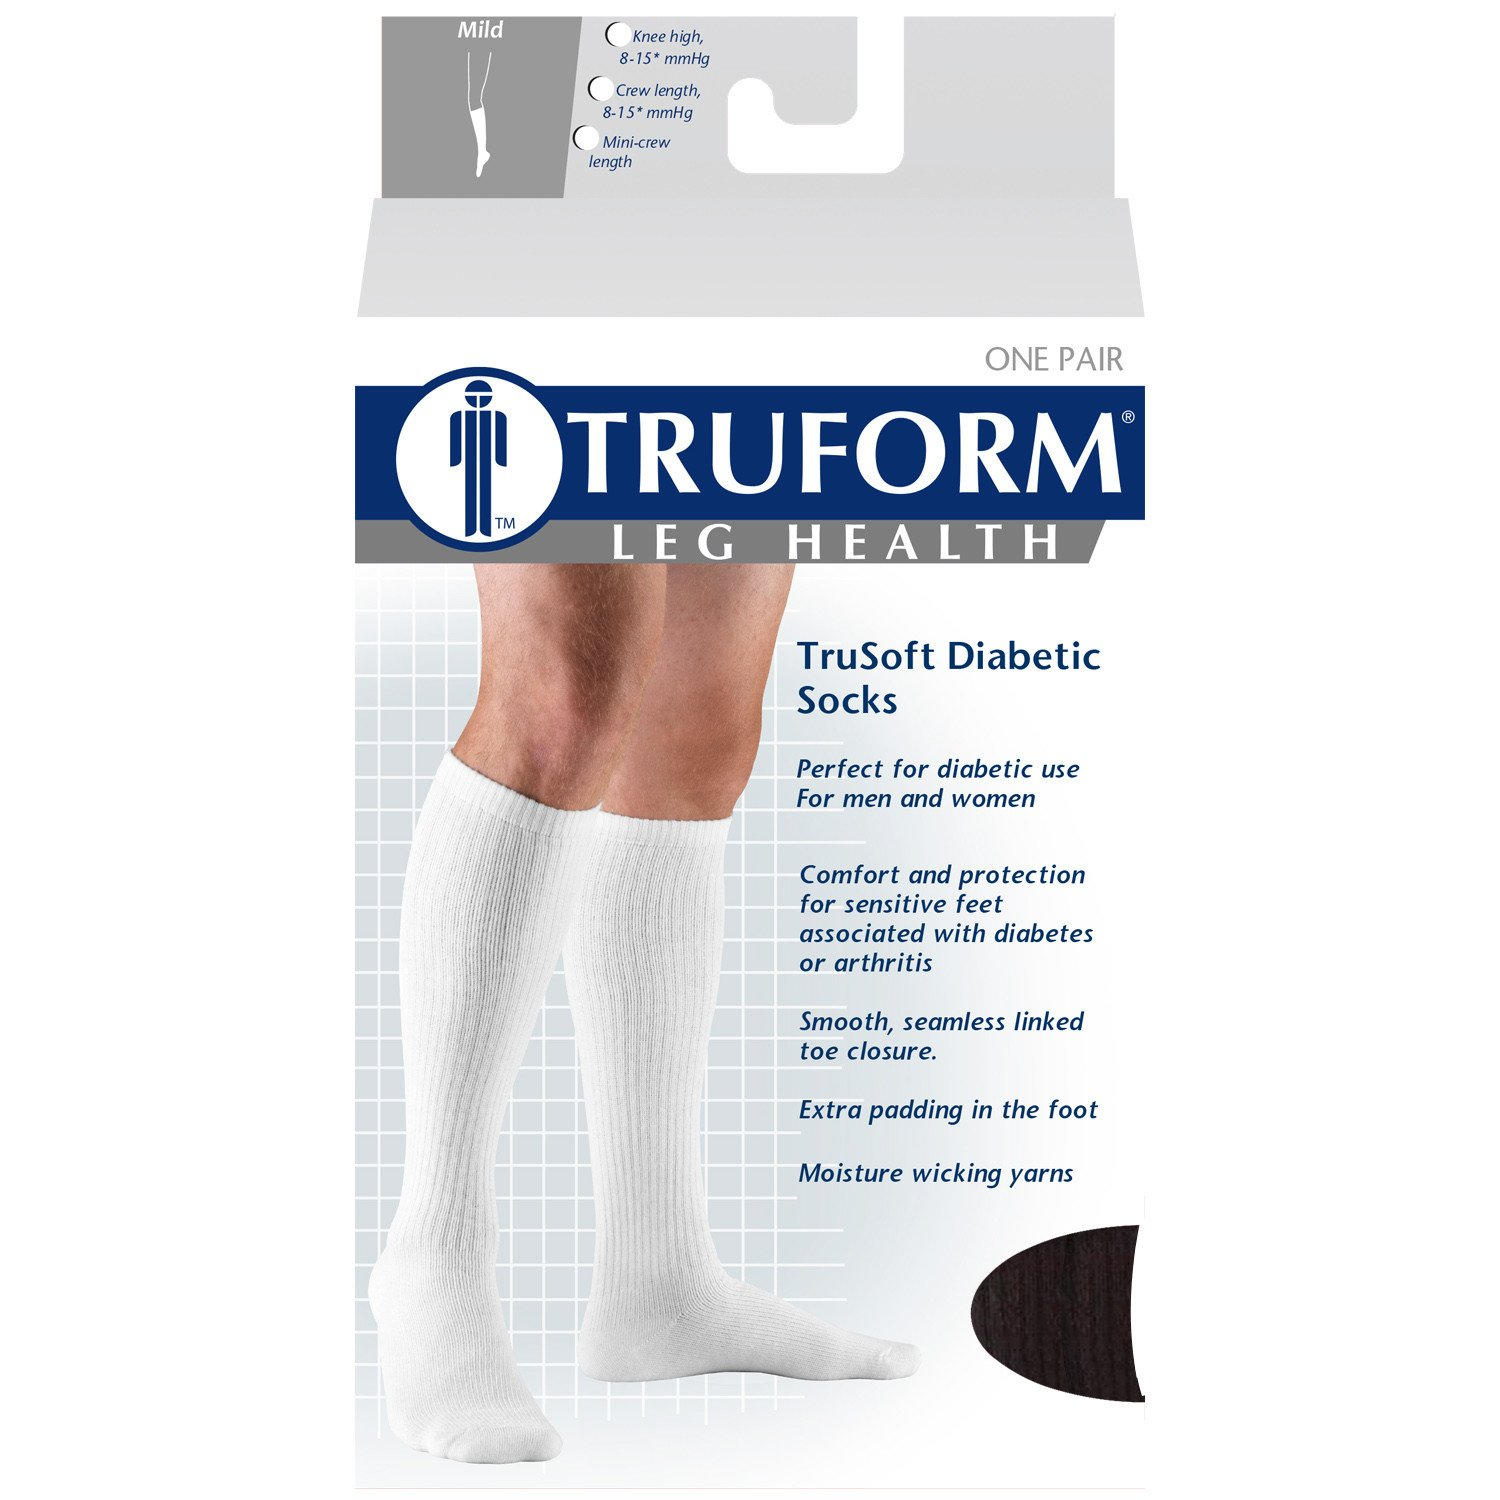 Amazon.com: Truform Knee High Compression Socks, X-Small: Health & Personal Care